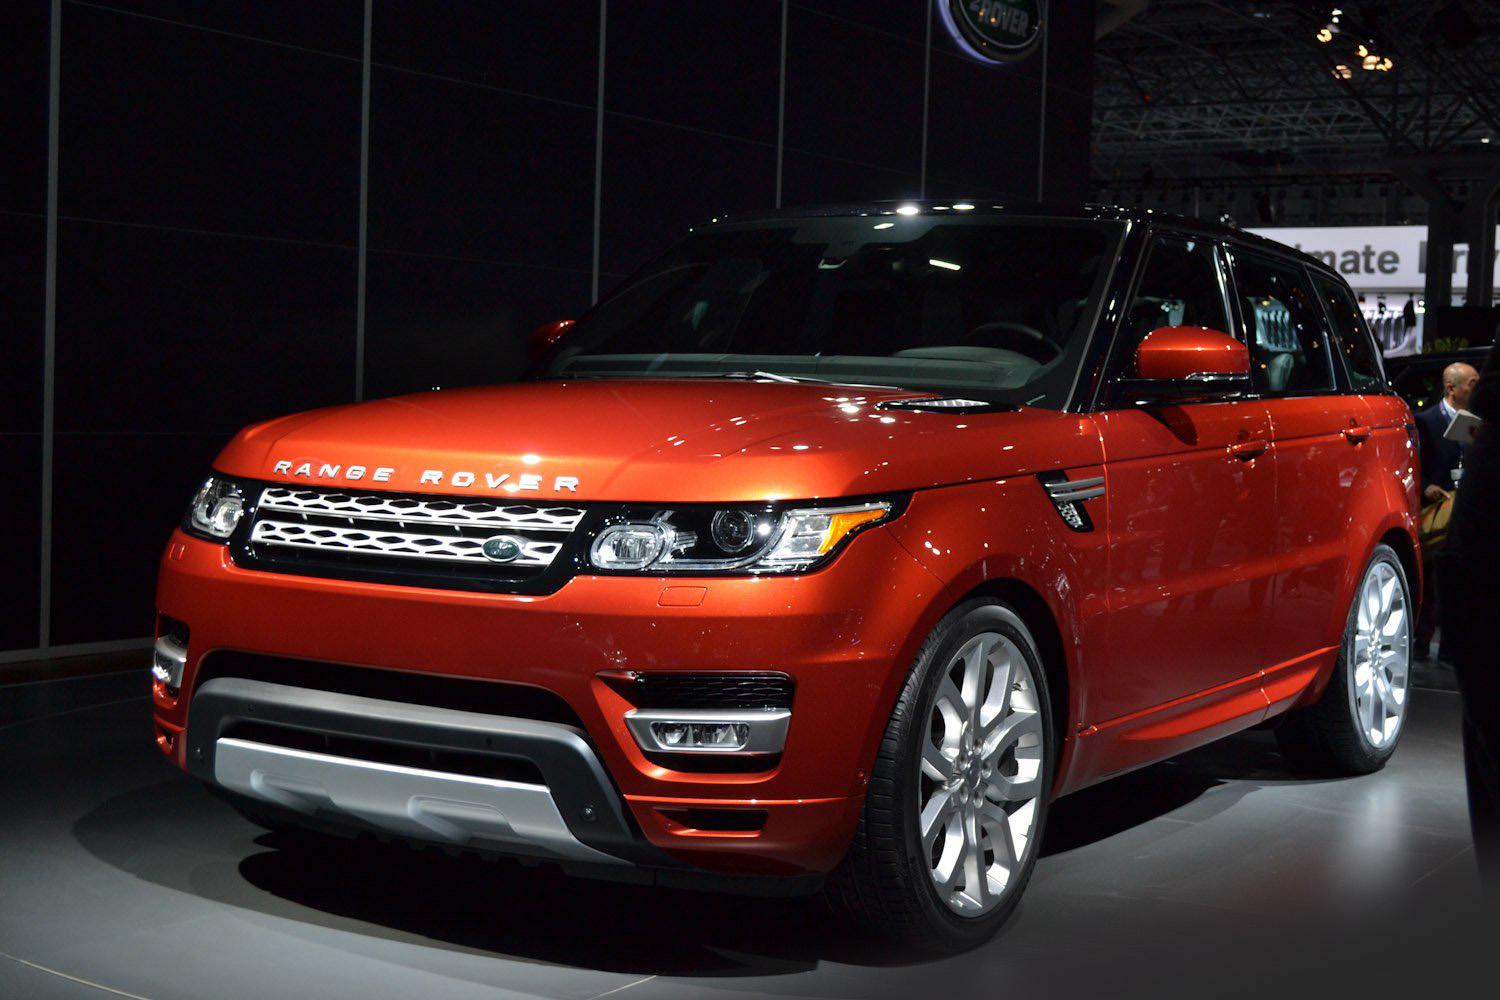 range rover sport 3 0 tdv6 hse power prestige cars. Black Bedroom Furniture Sets. Home Design Ideas